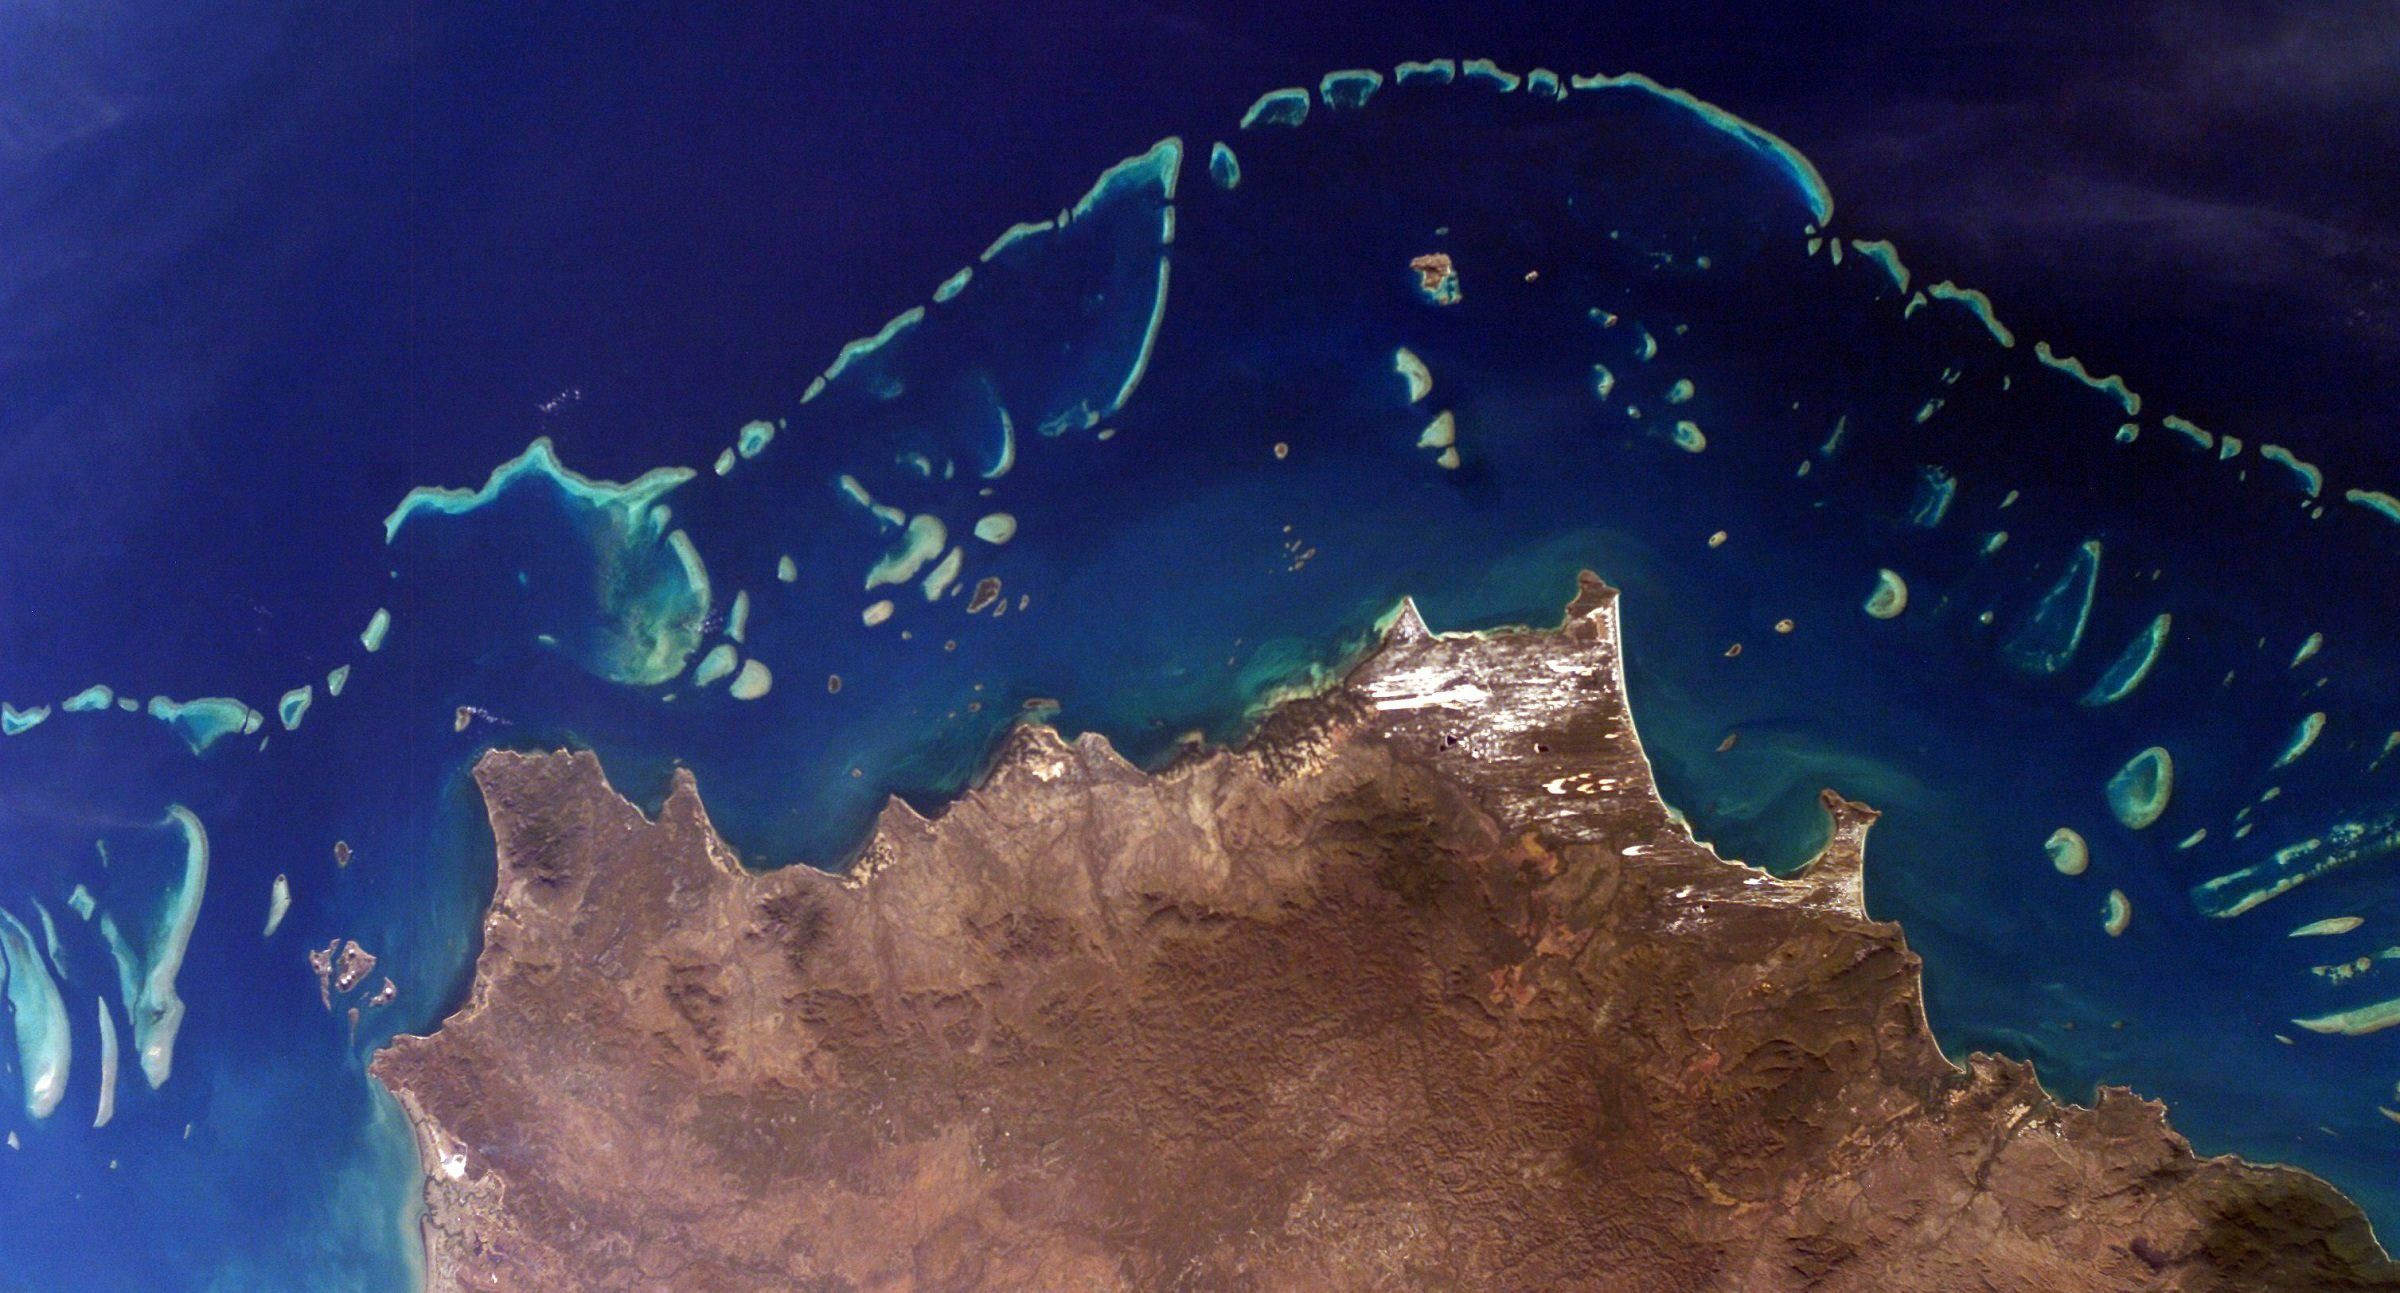 Part of Australia's Great Barrier Reef, one of many reefs that NASA's COral Reef Airborne Laboratory (CORAL) will study begin